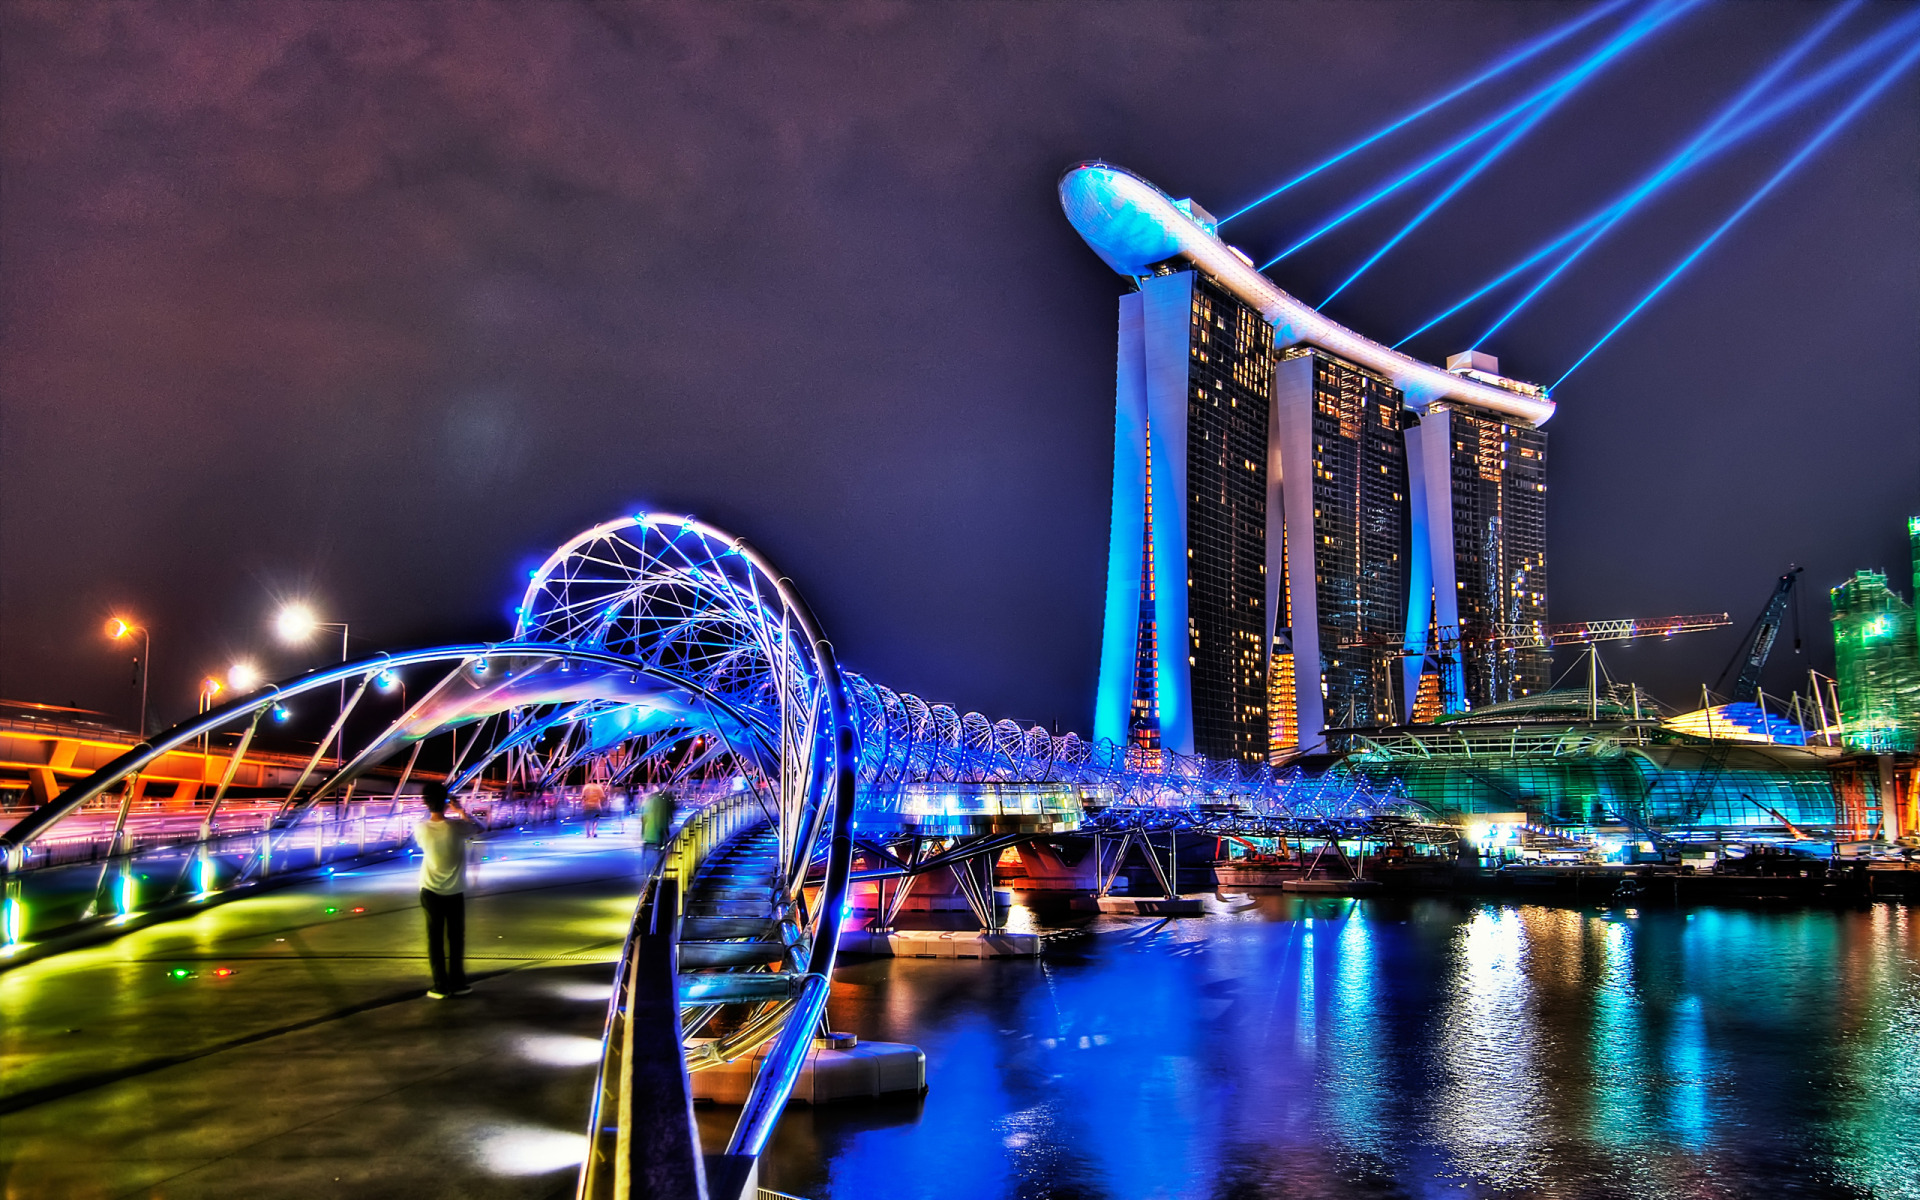 singapore wallpaper 30 wallpapers adorable wallpapers For3d Wallpaper For Home Singapore